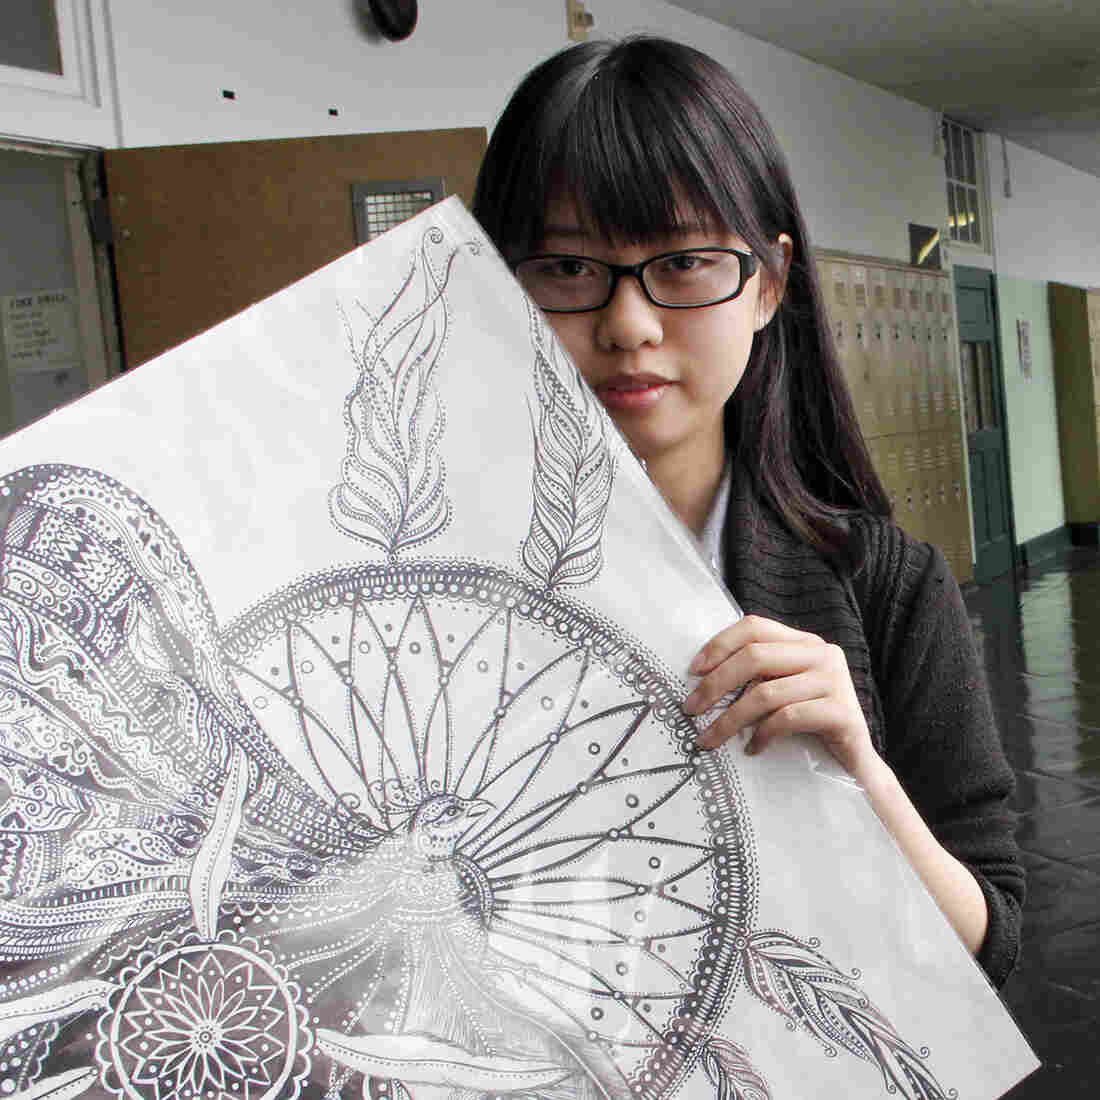 Xiuying Zhang, a senior at Furness High School, could not pass any portion of the Keystone Exams. She has been accepted to University of the Arts and hopes to become an artist.